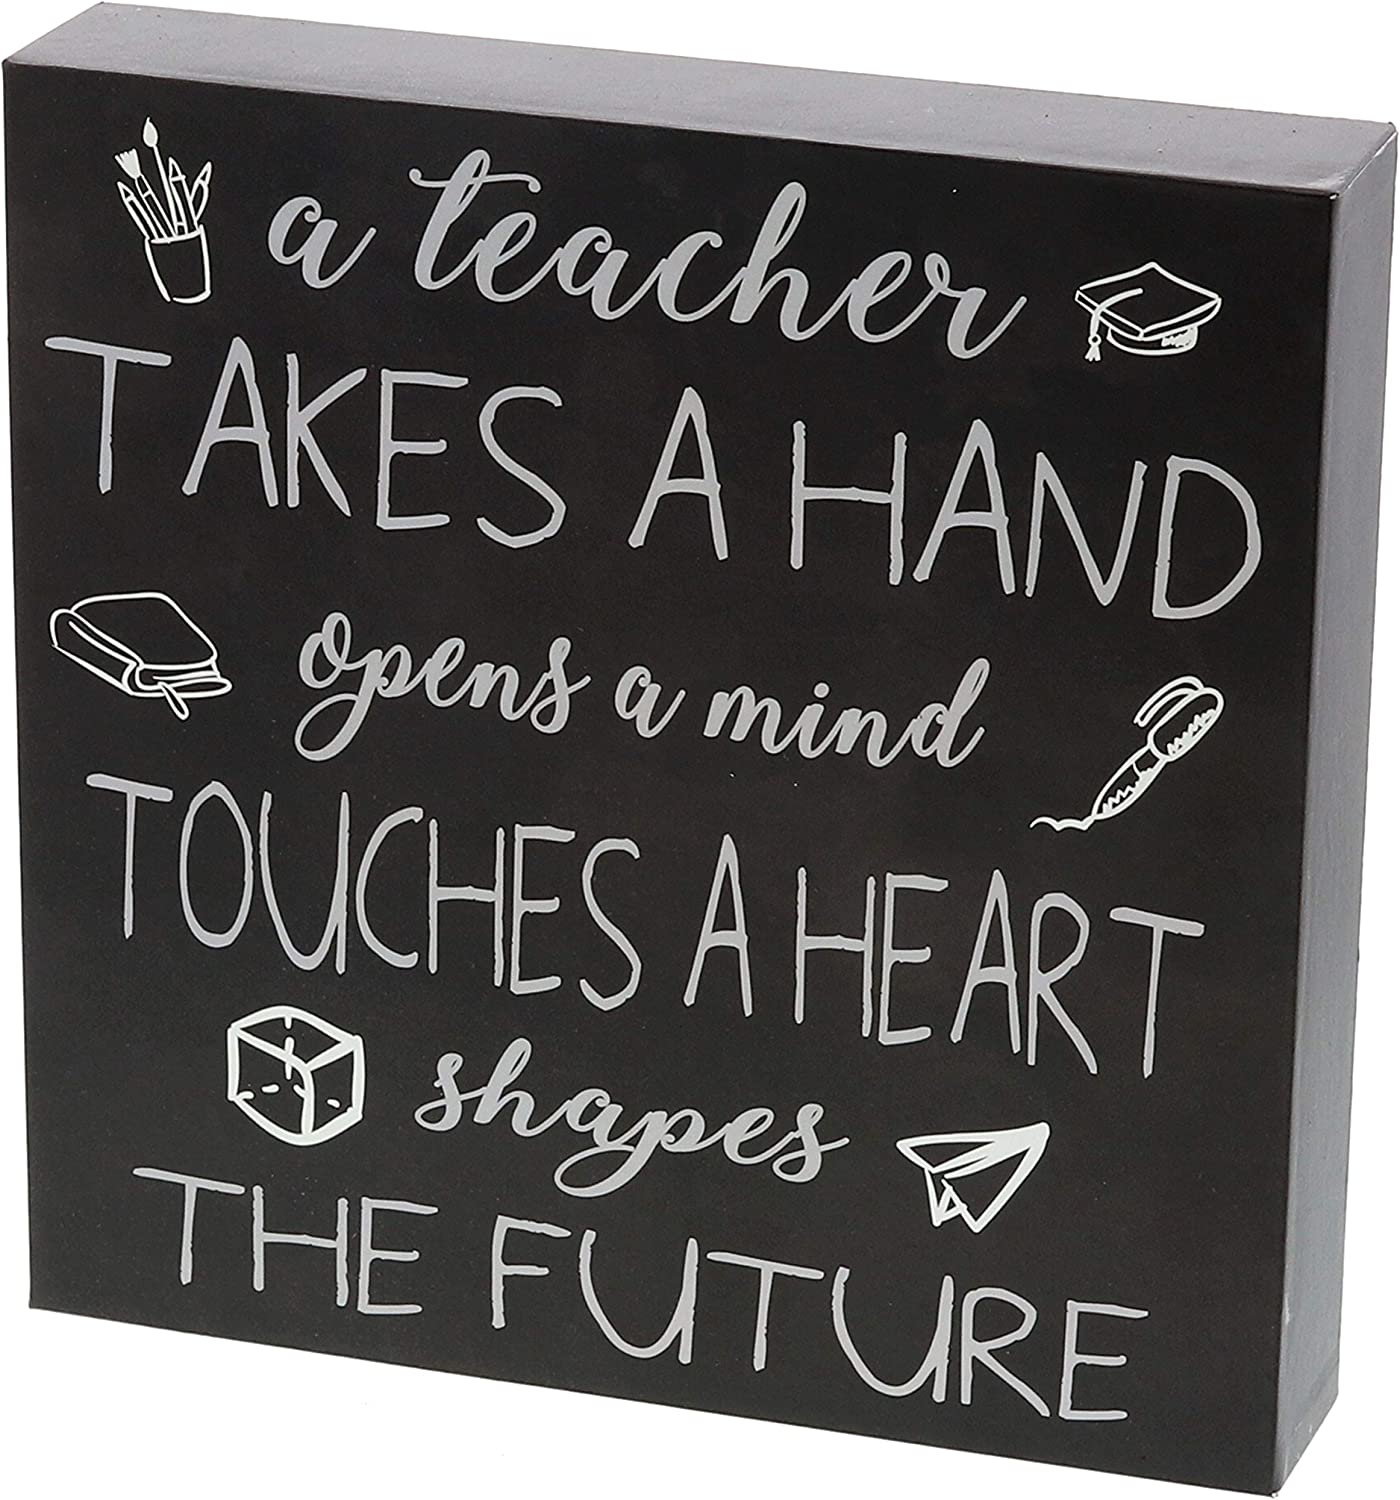 "Barnyard Designs A Teacher Takes a Hand Opens A Mind Touches A Heart Box Sign Home Decor Wood Sign with Sayings 8"" x 8"""